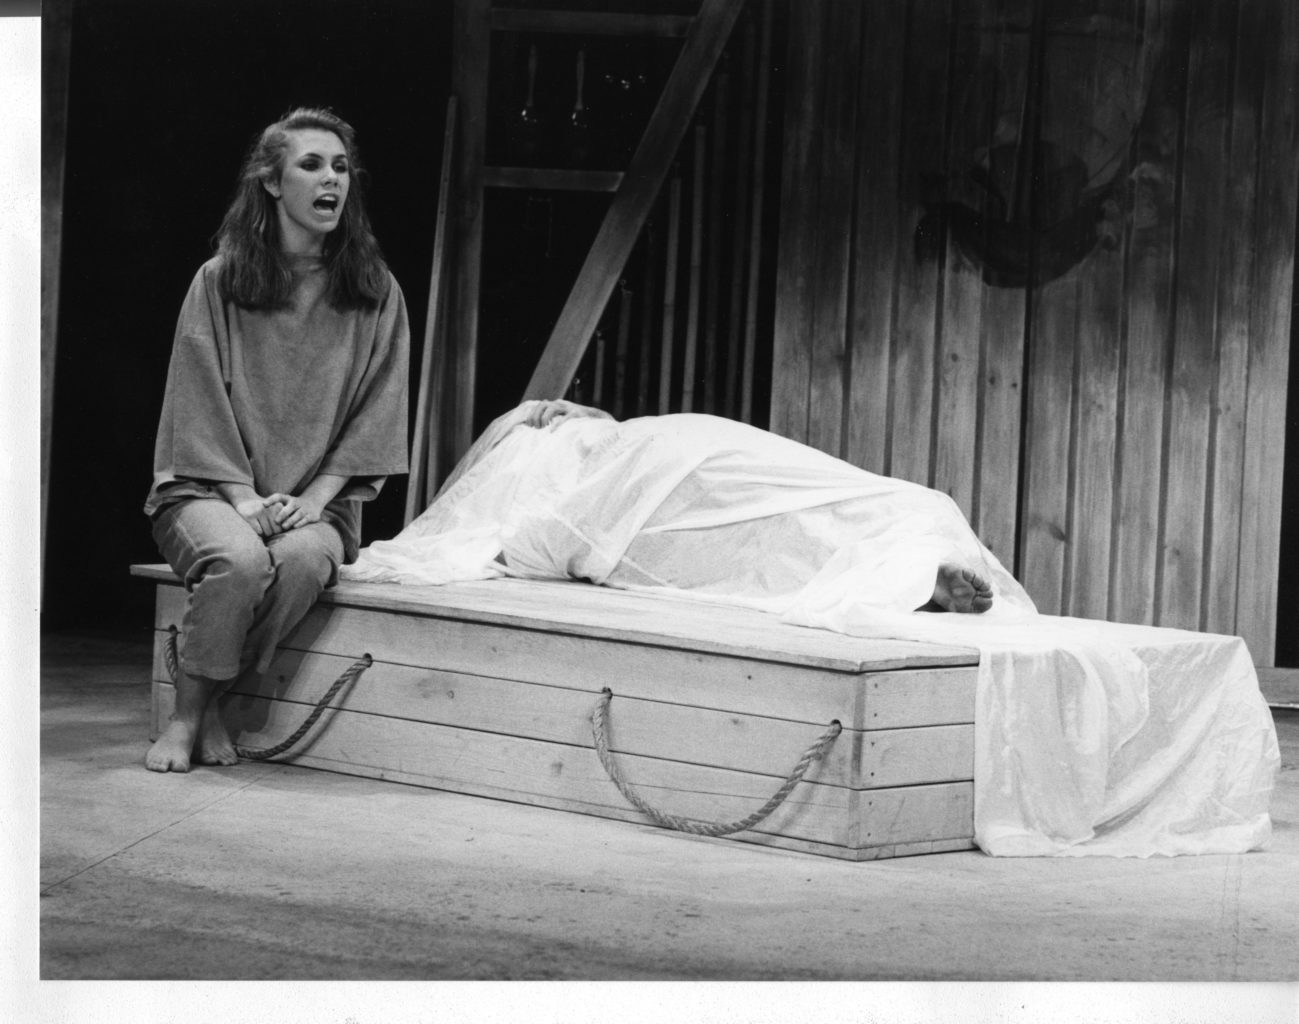 Pericles black and white production photography (copyright Peter Mares)